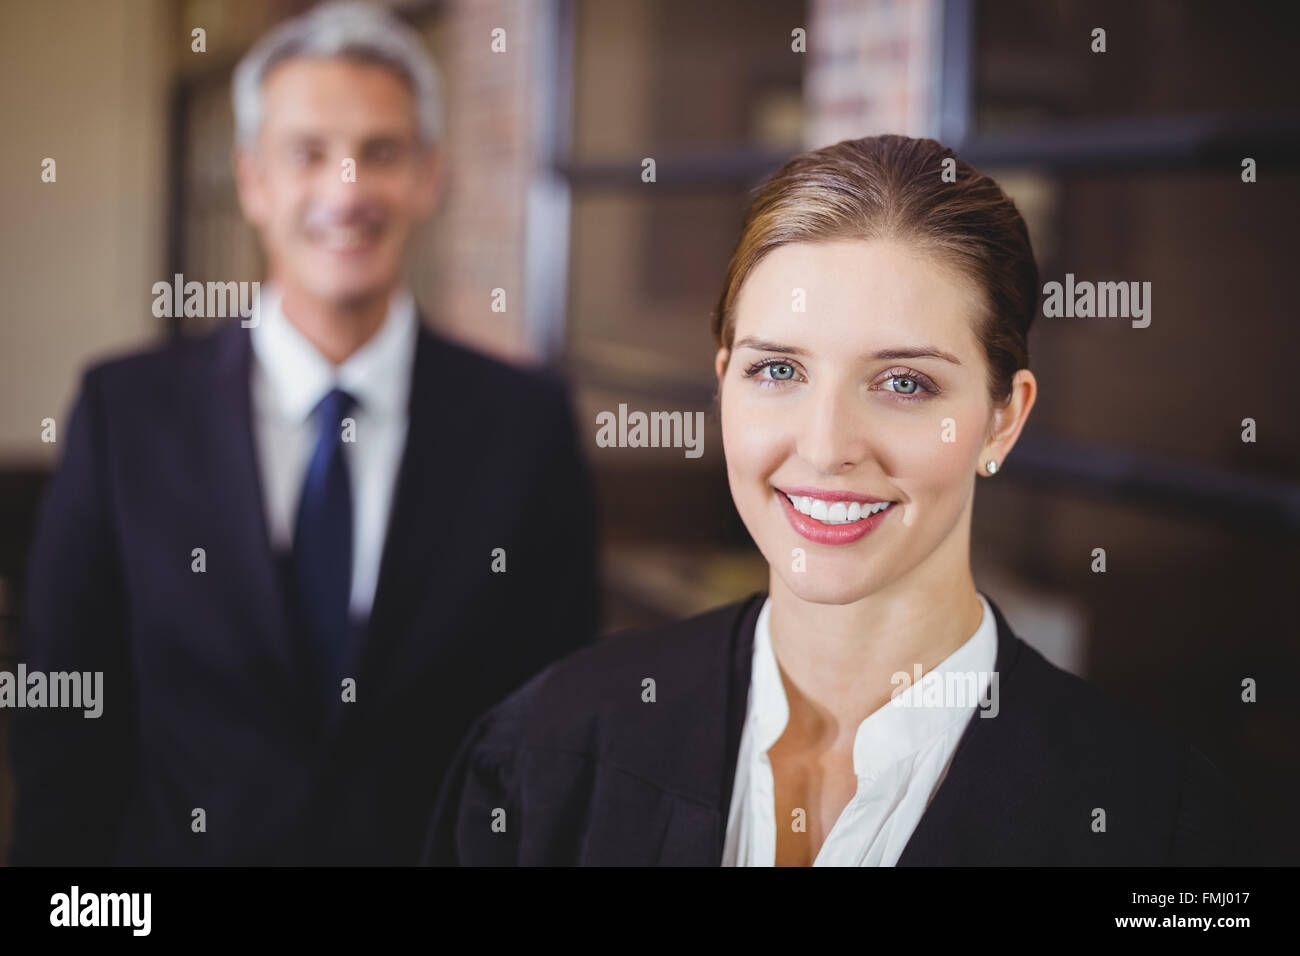 Female lawyer smiling while male colleague in background - Stock Image